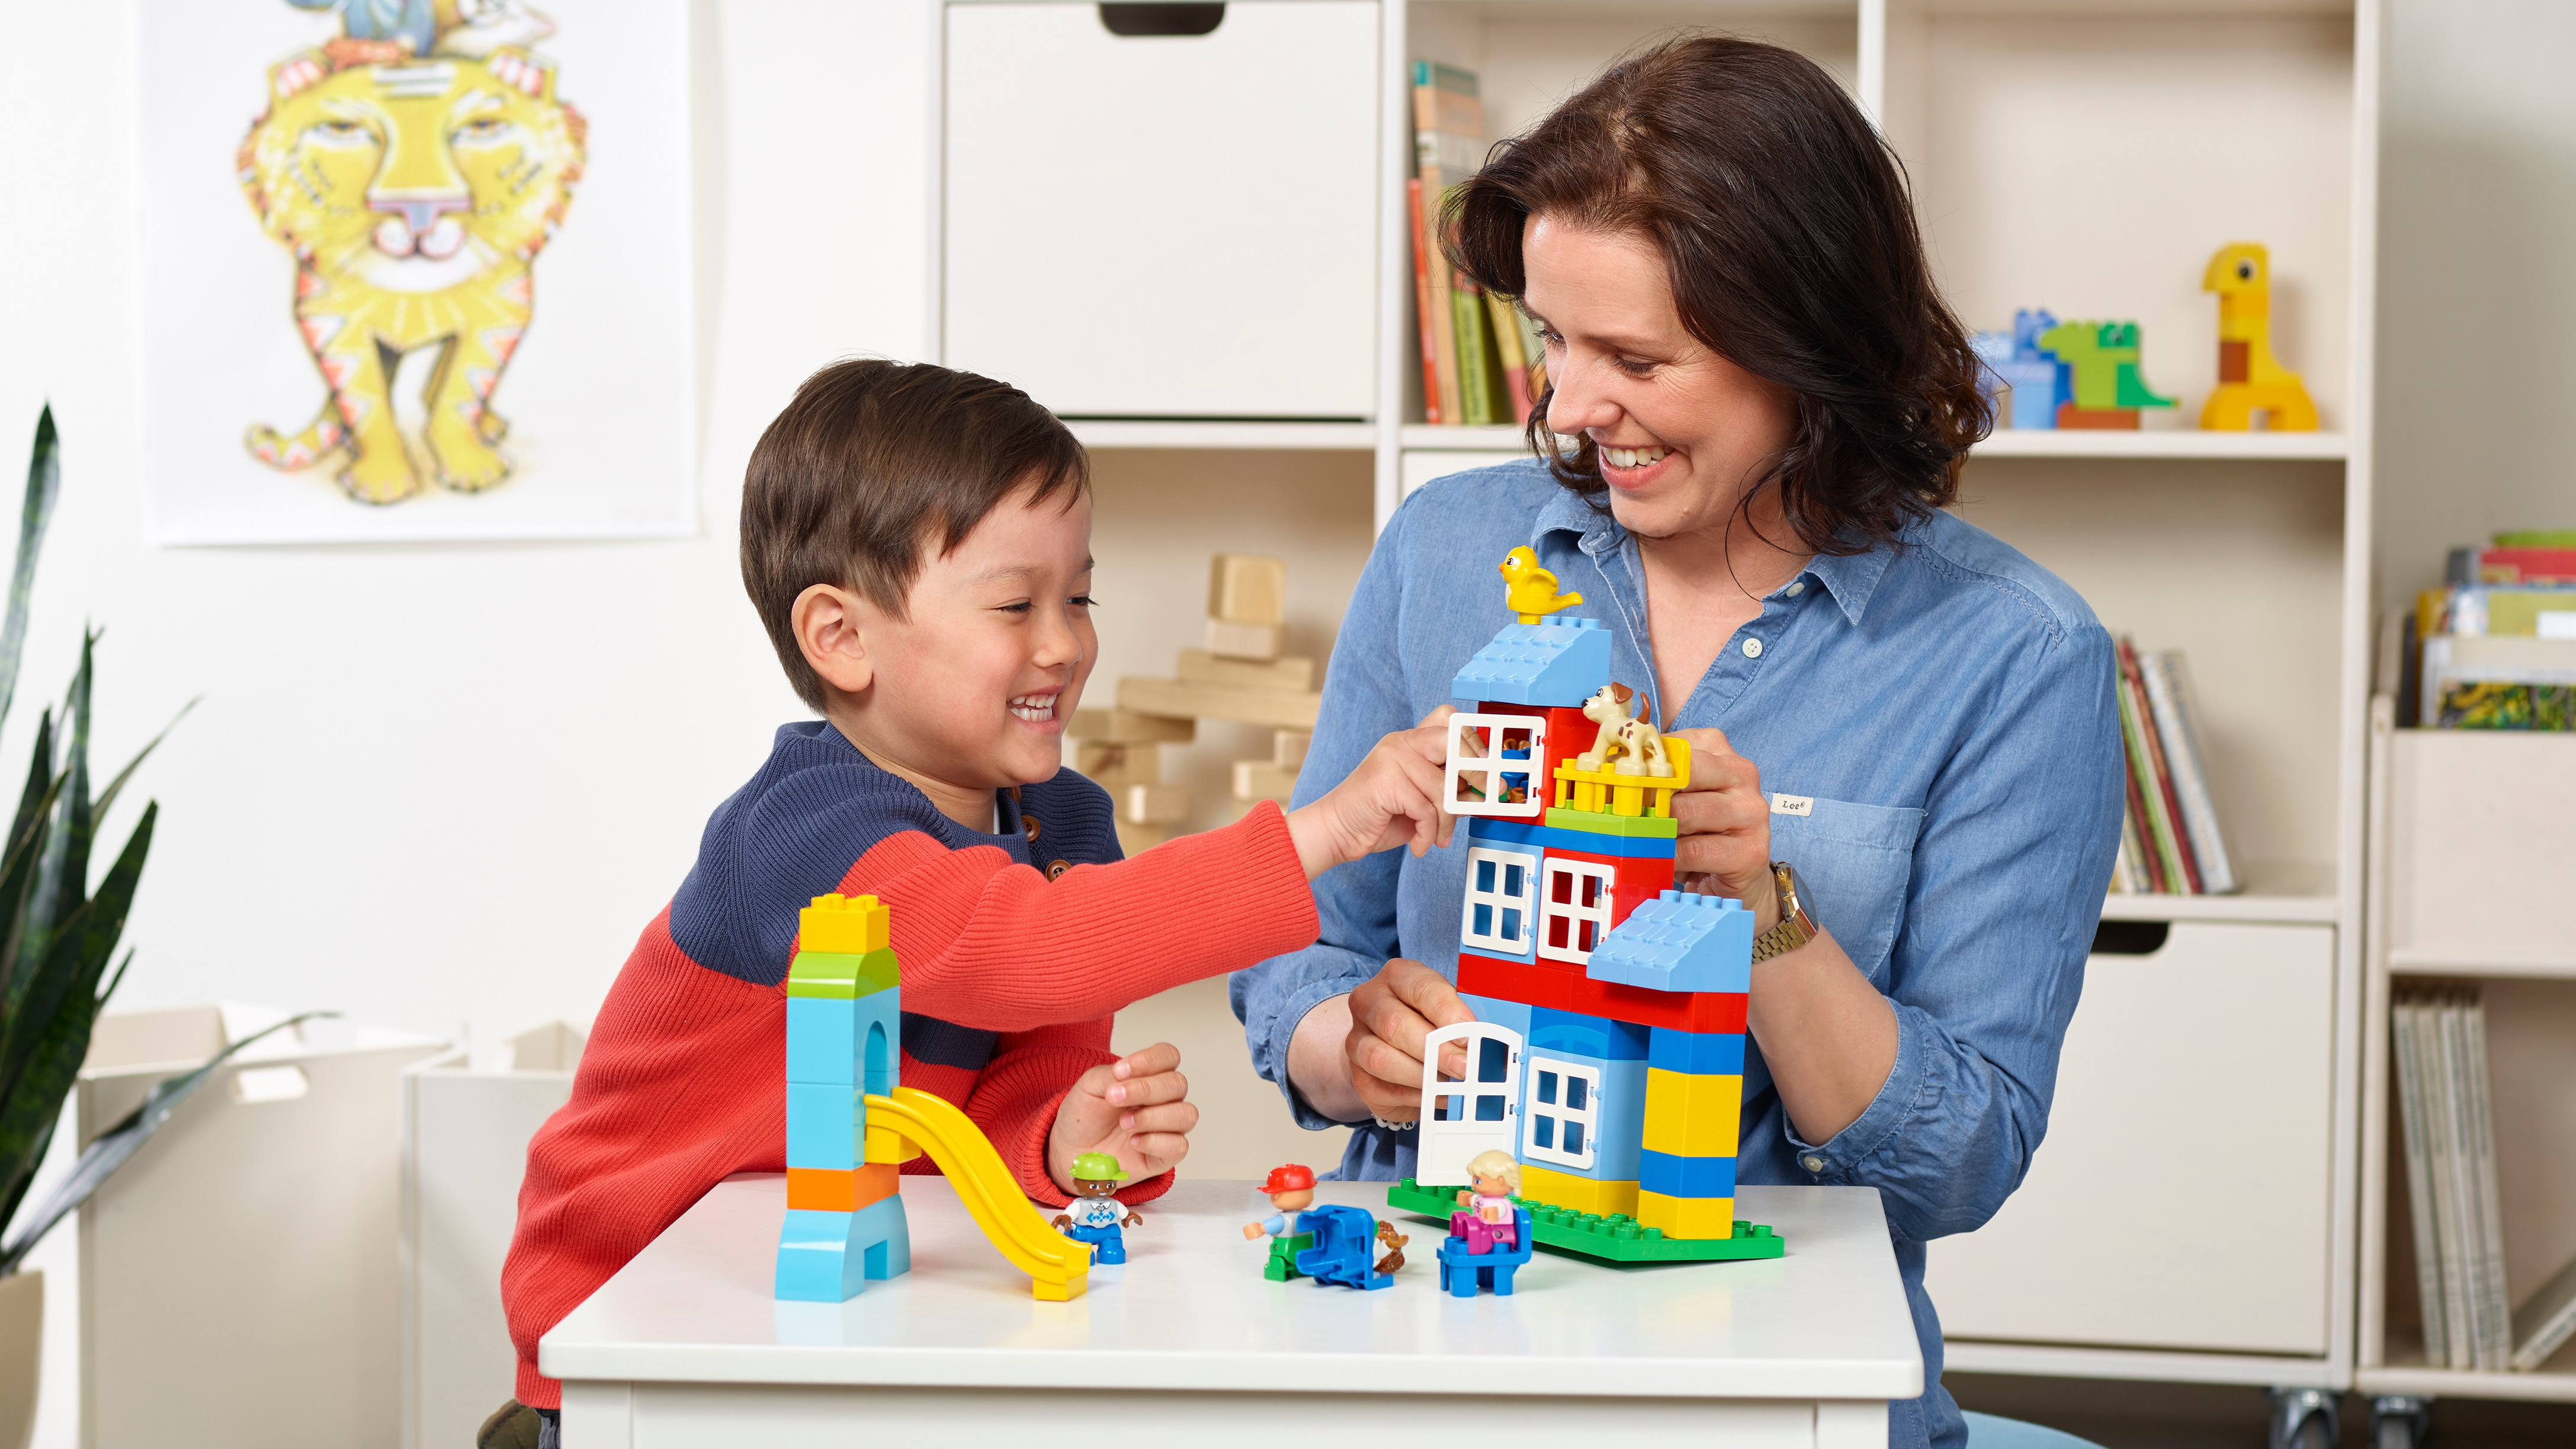 do some certain children s toys create social and emotional problems Severe temper outbursts or who destroy toys may appear to have a serious problem to some parents among all the dilemmas facing a parent of a child with emotional or behavioral problems every child faces emotional difficulties from time to time, as do adults.